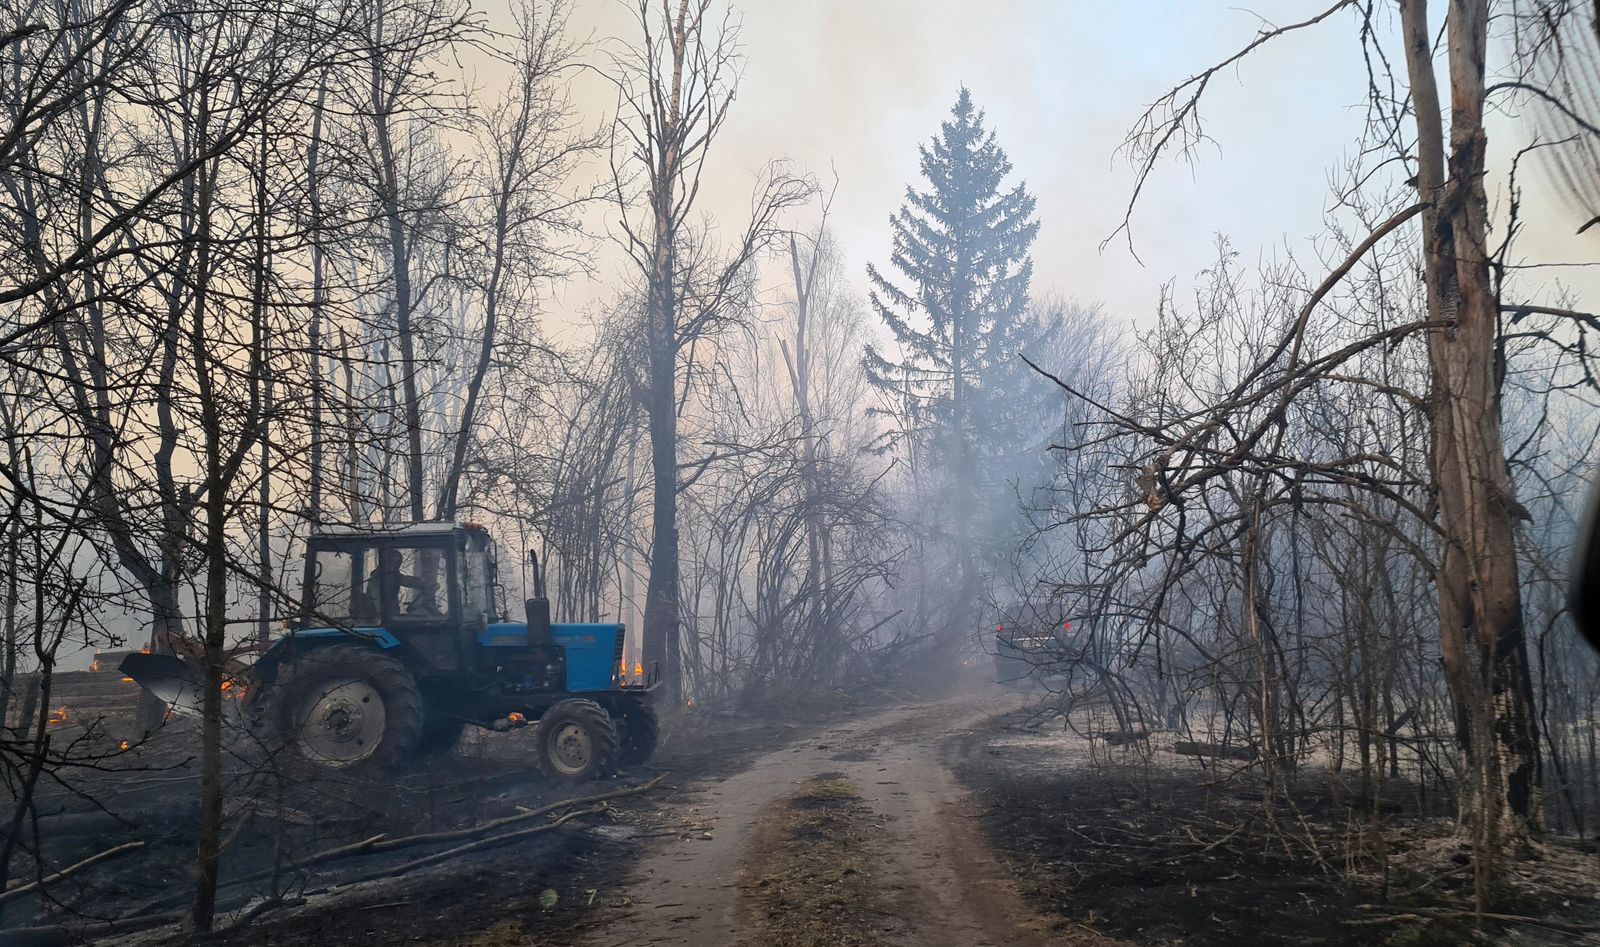 Chernobyl zone workers extinguish a forest fire burning near the village of Volodymyrivka, in the exclusion zone around the Chernobyl nuclear power plant, Ukraine, Sunday April 5, 2020. (AP Photo/Yaroslav Yemelianenko)